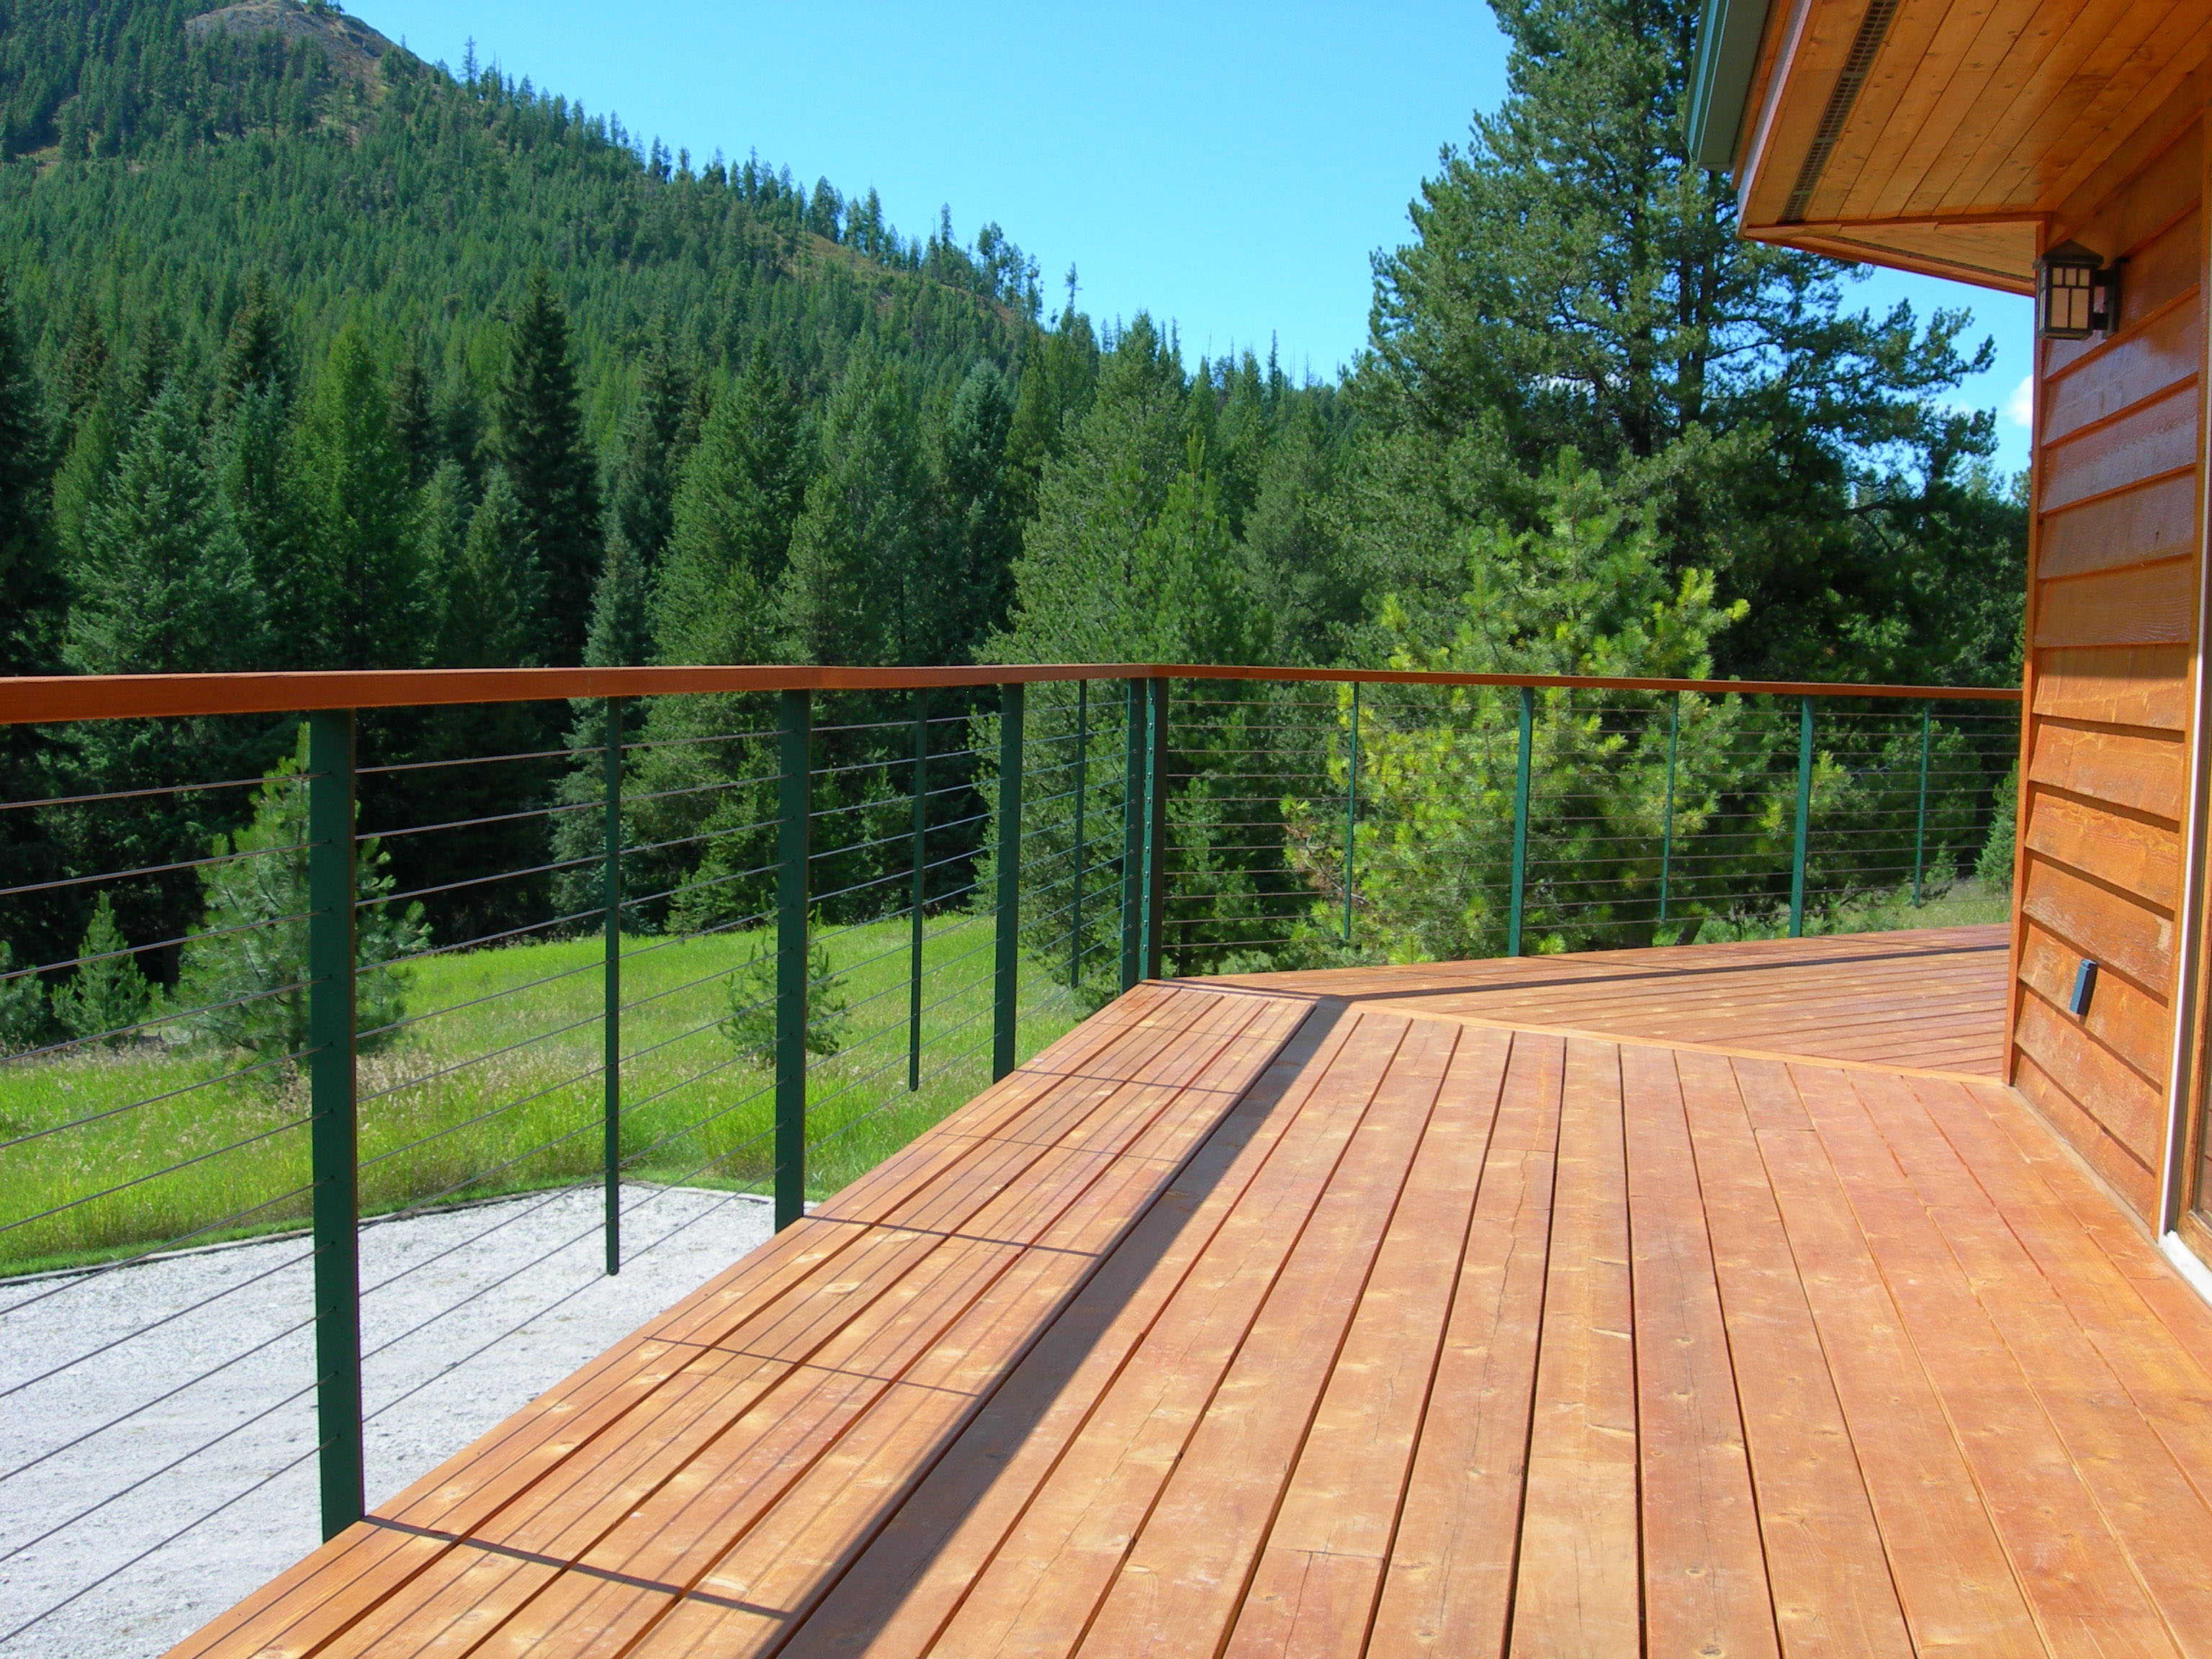 Green metal railing posts and wood top rail complement the forest view